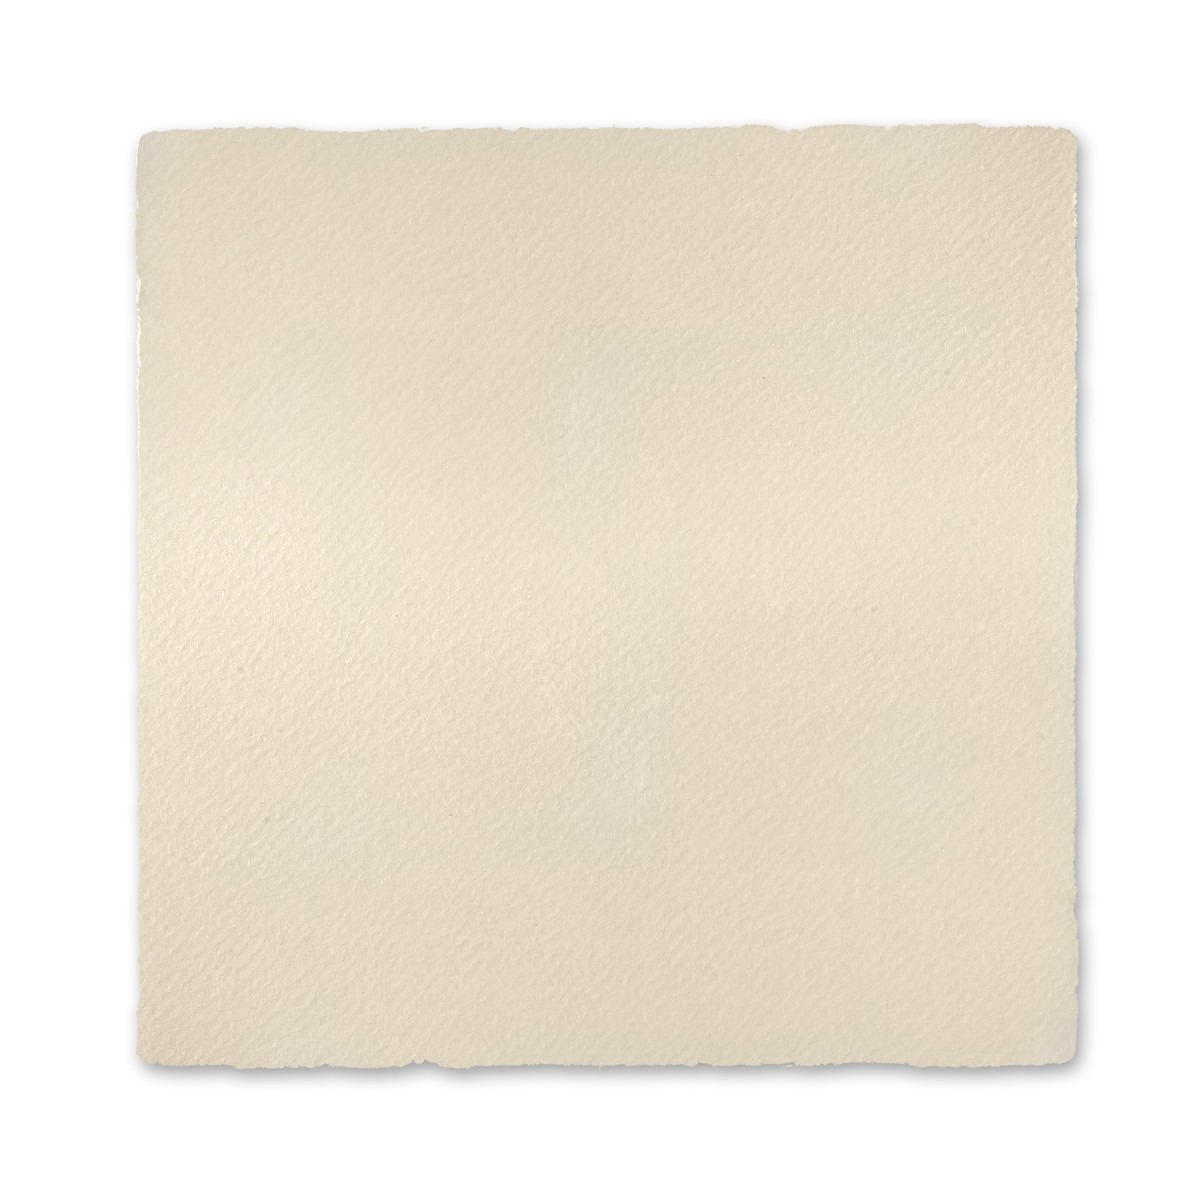 "Arturo Soft White Square Reply Cards (5SQSC) 97# Cover (5 1/4"" x 5 1/4"") Bulk Pack of 100"